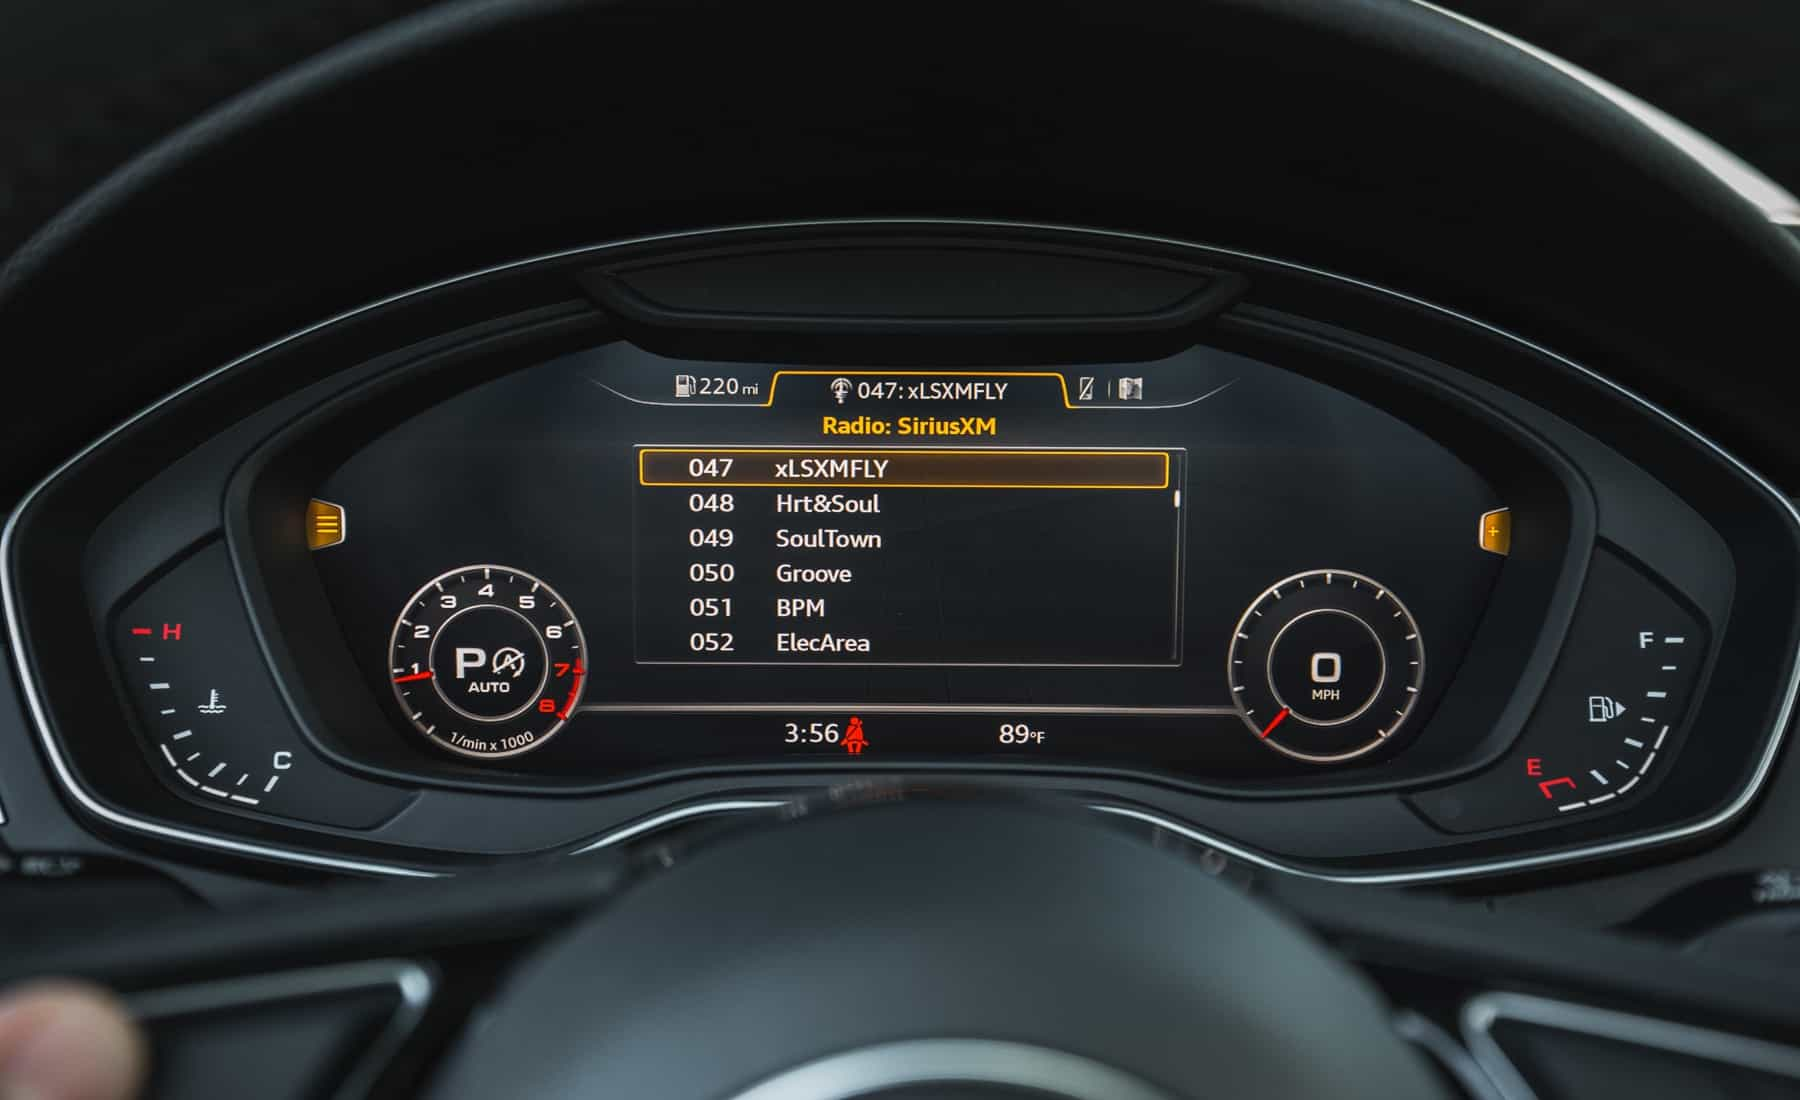 2018 Audi A5 Cabriolet Interior View Instrument Cluster (Photo 33 of 45)